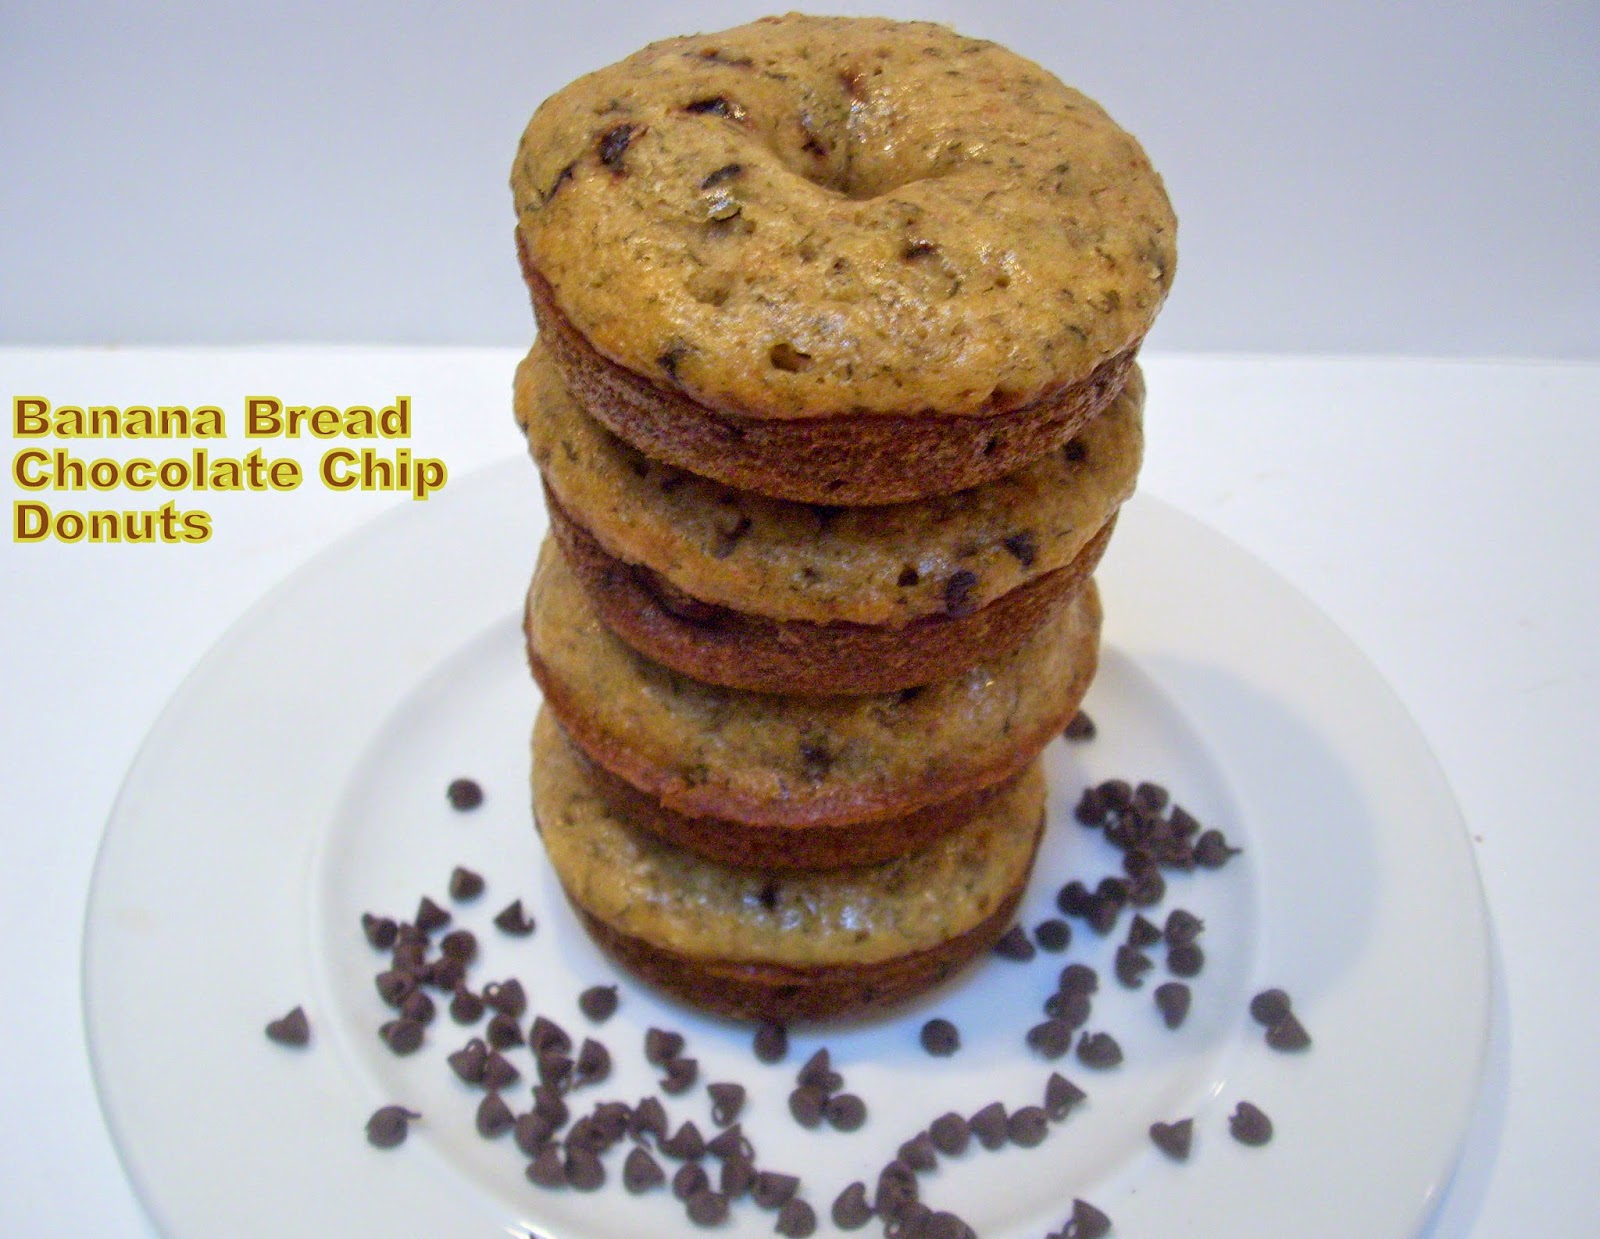 Banana Bread Chocolate Chip Donuts! Recipe from Flavors by Four